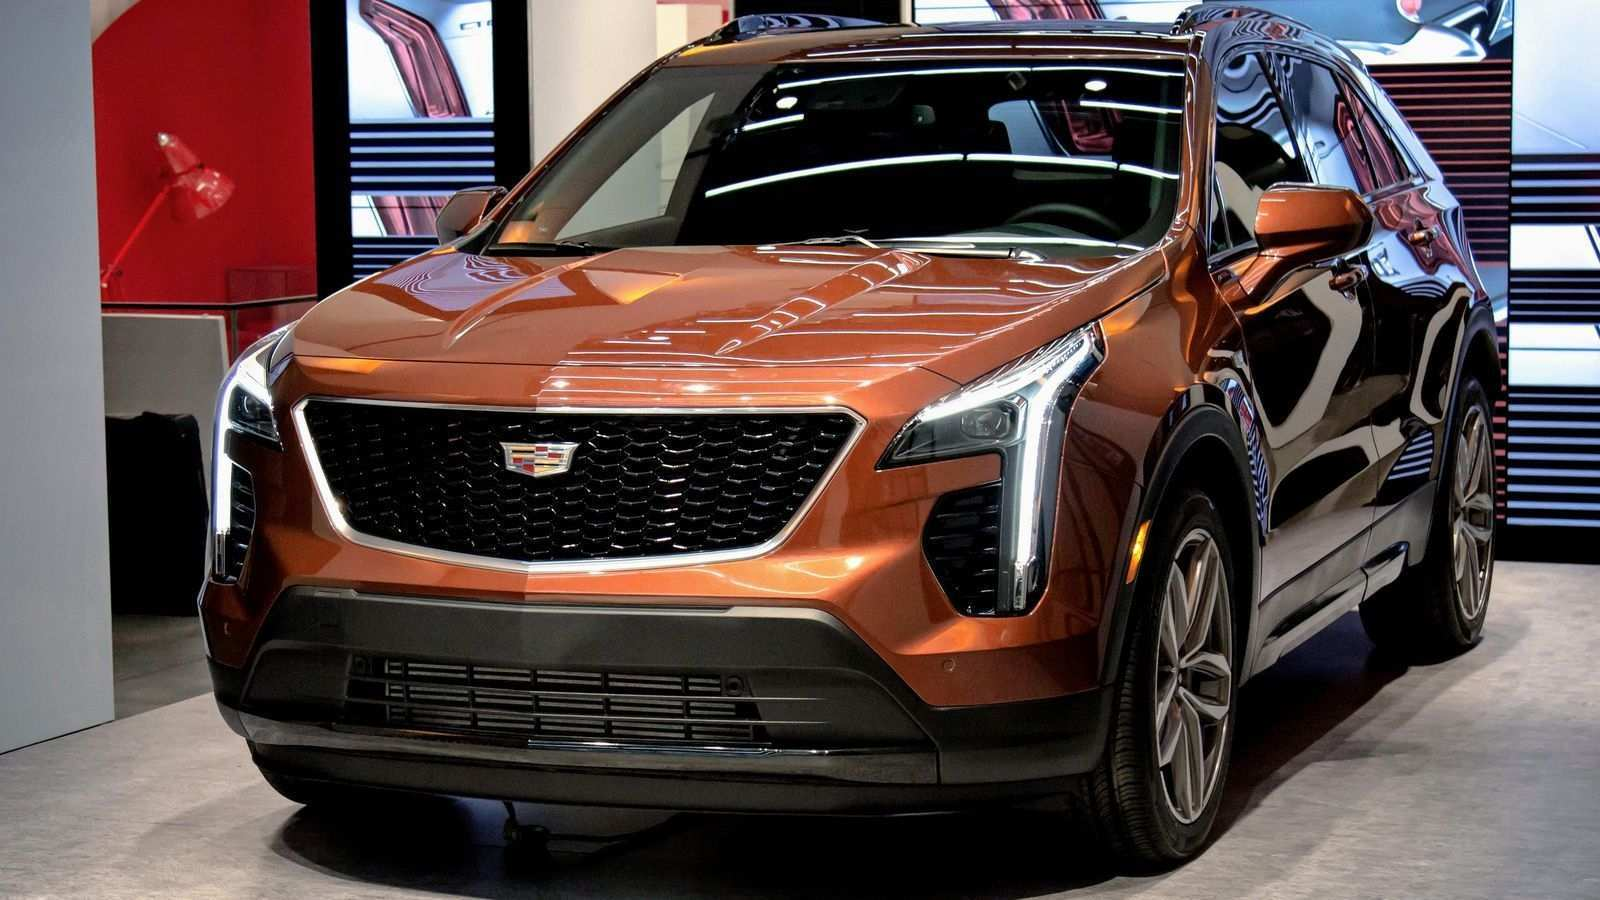 95 Great Best New Cadillac 2019 Models Release Date And Specs Redesign and Concept for Best New Cadillac 2019 Models Release Date And Specs